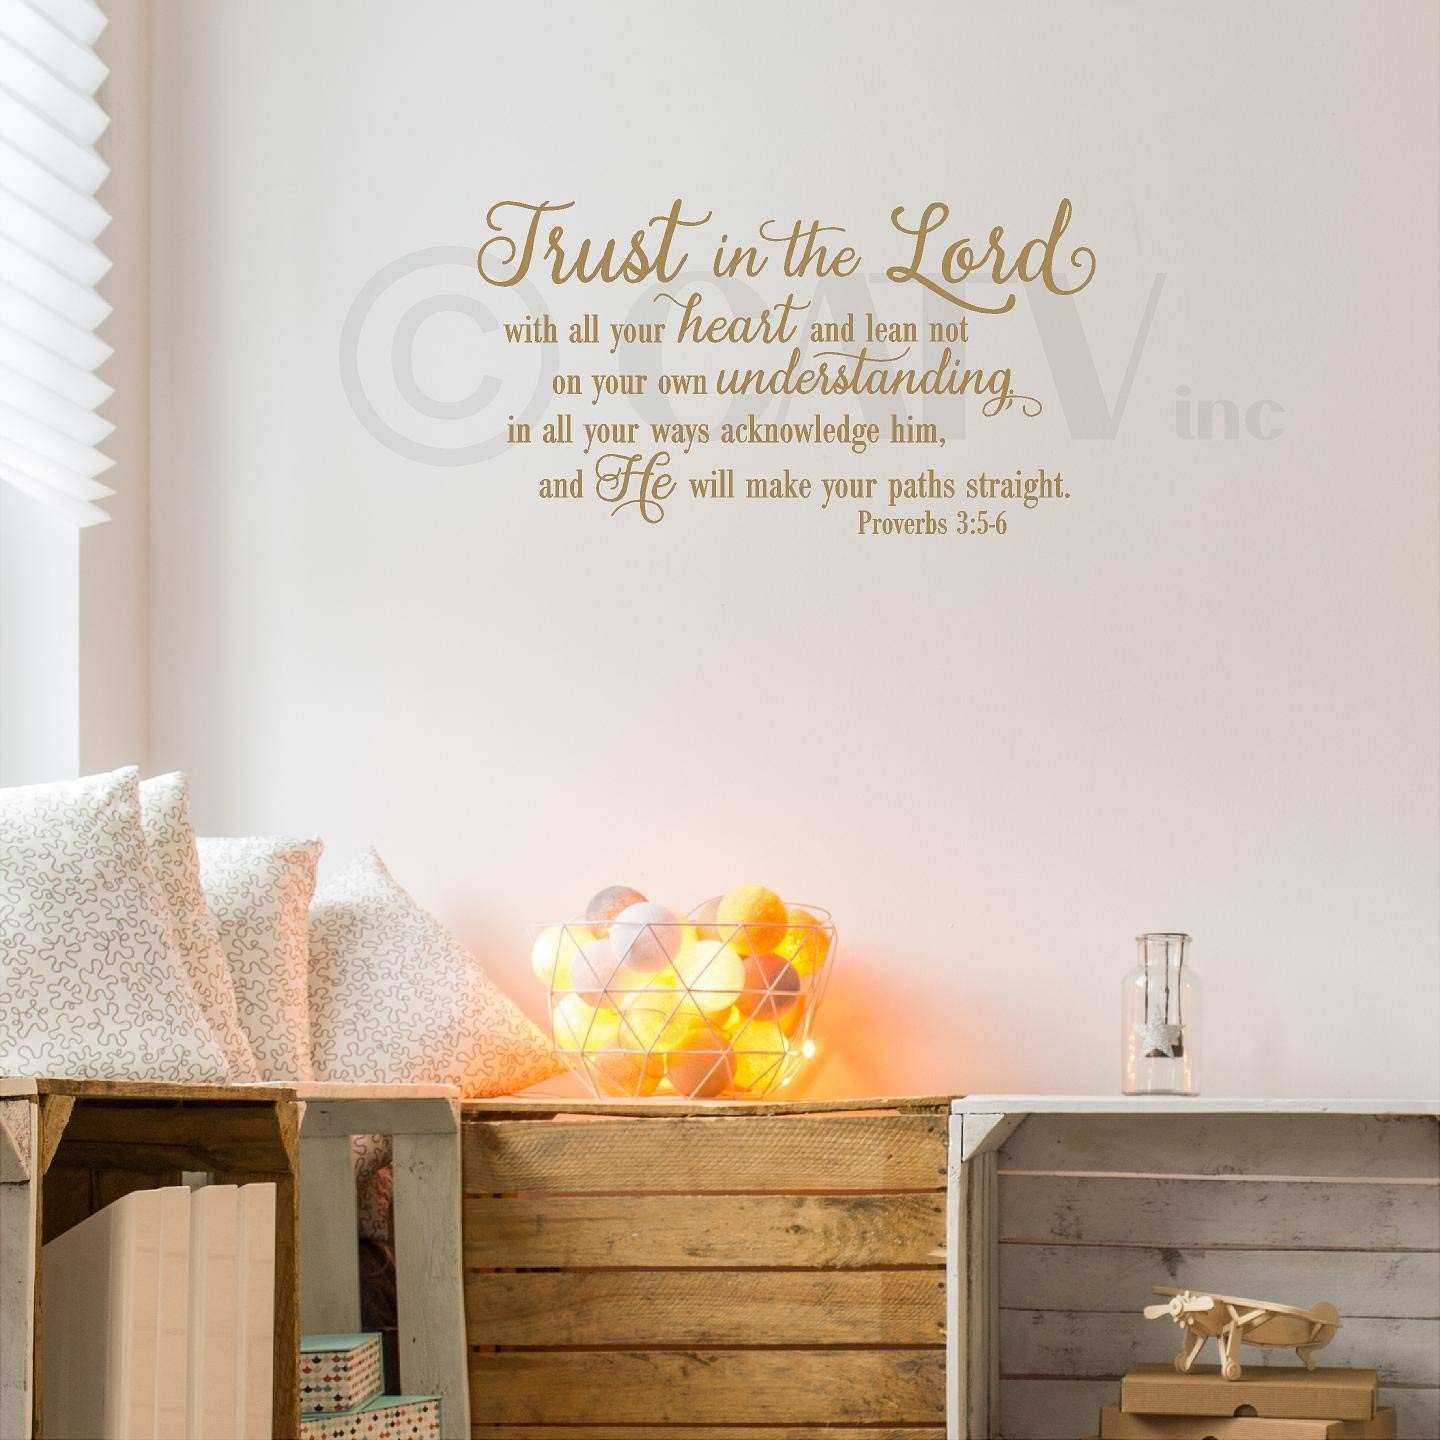 Create Your Own Wall Decal Fresh Trust In The Lord With All Your